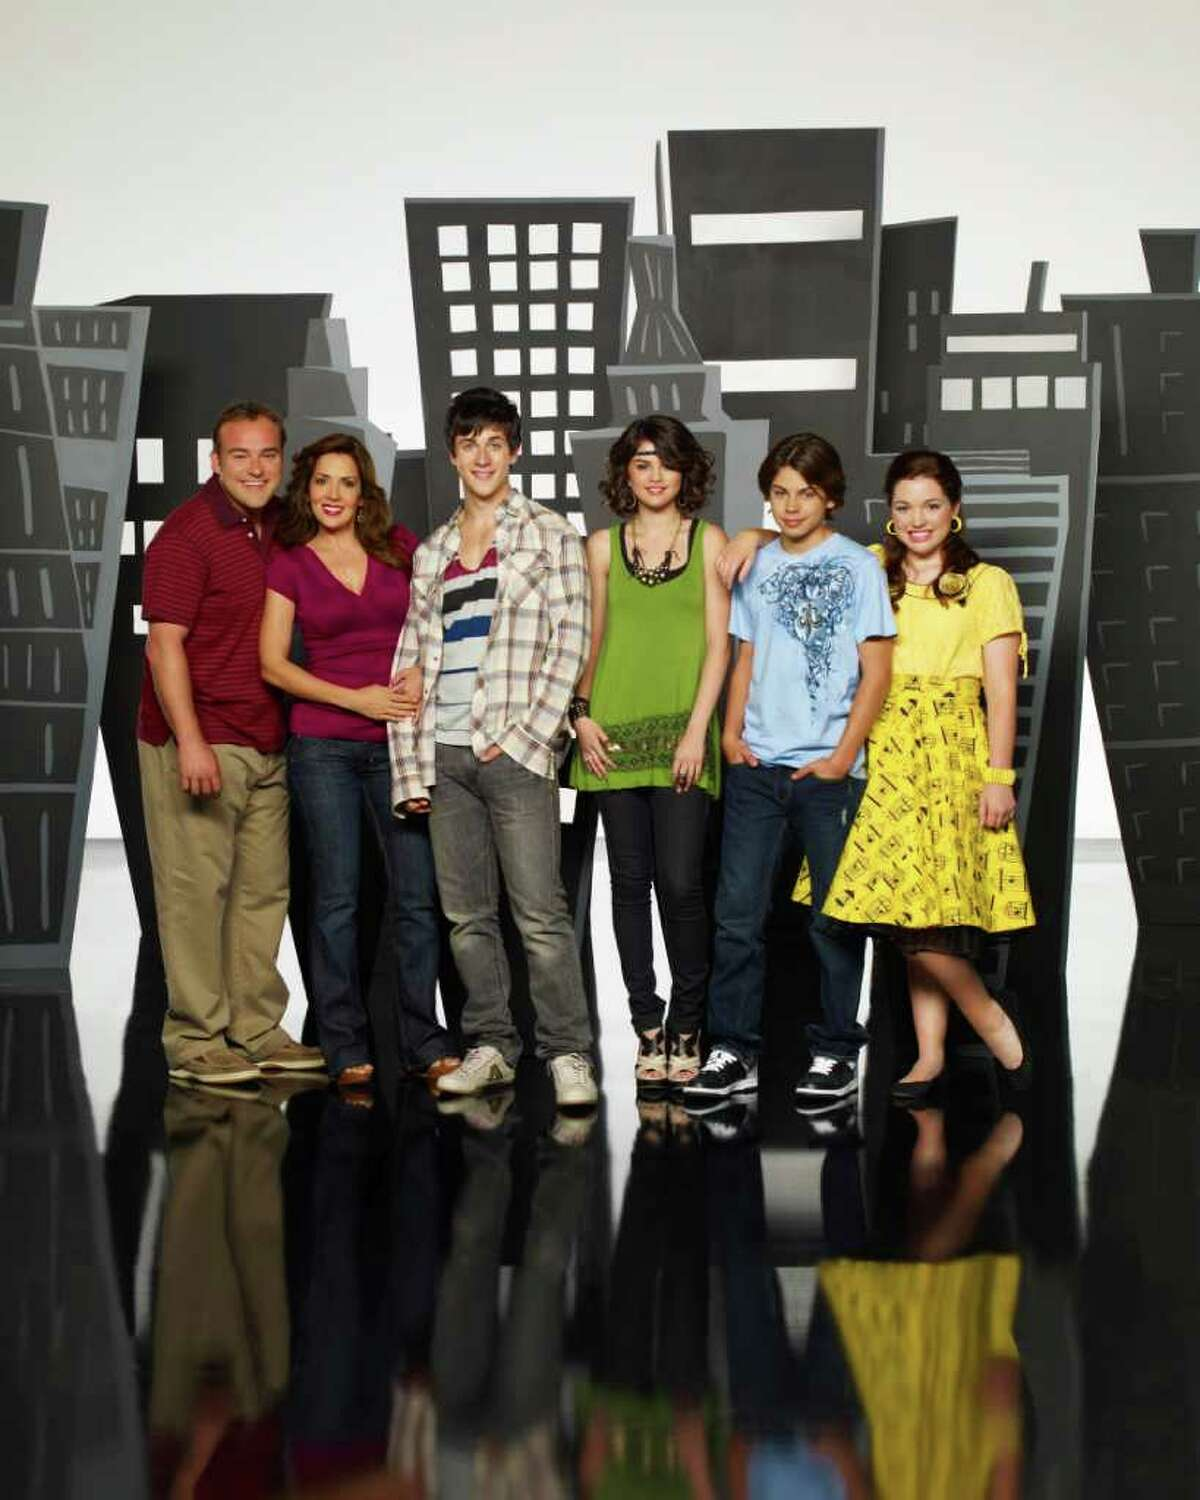 """WIZARDS OF WAVERLY PLACE - Disney Channel's """"Wizards of Waverly Place"""" stars David Deluise as Jerry Russo, Maria Canals-Barrera as Theresa Russo, David Henrie as Justin Russo, Selena Gomez as Alex Russo, Jake T. Austin as Max Russo and Jennifer Stone as Harper."""